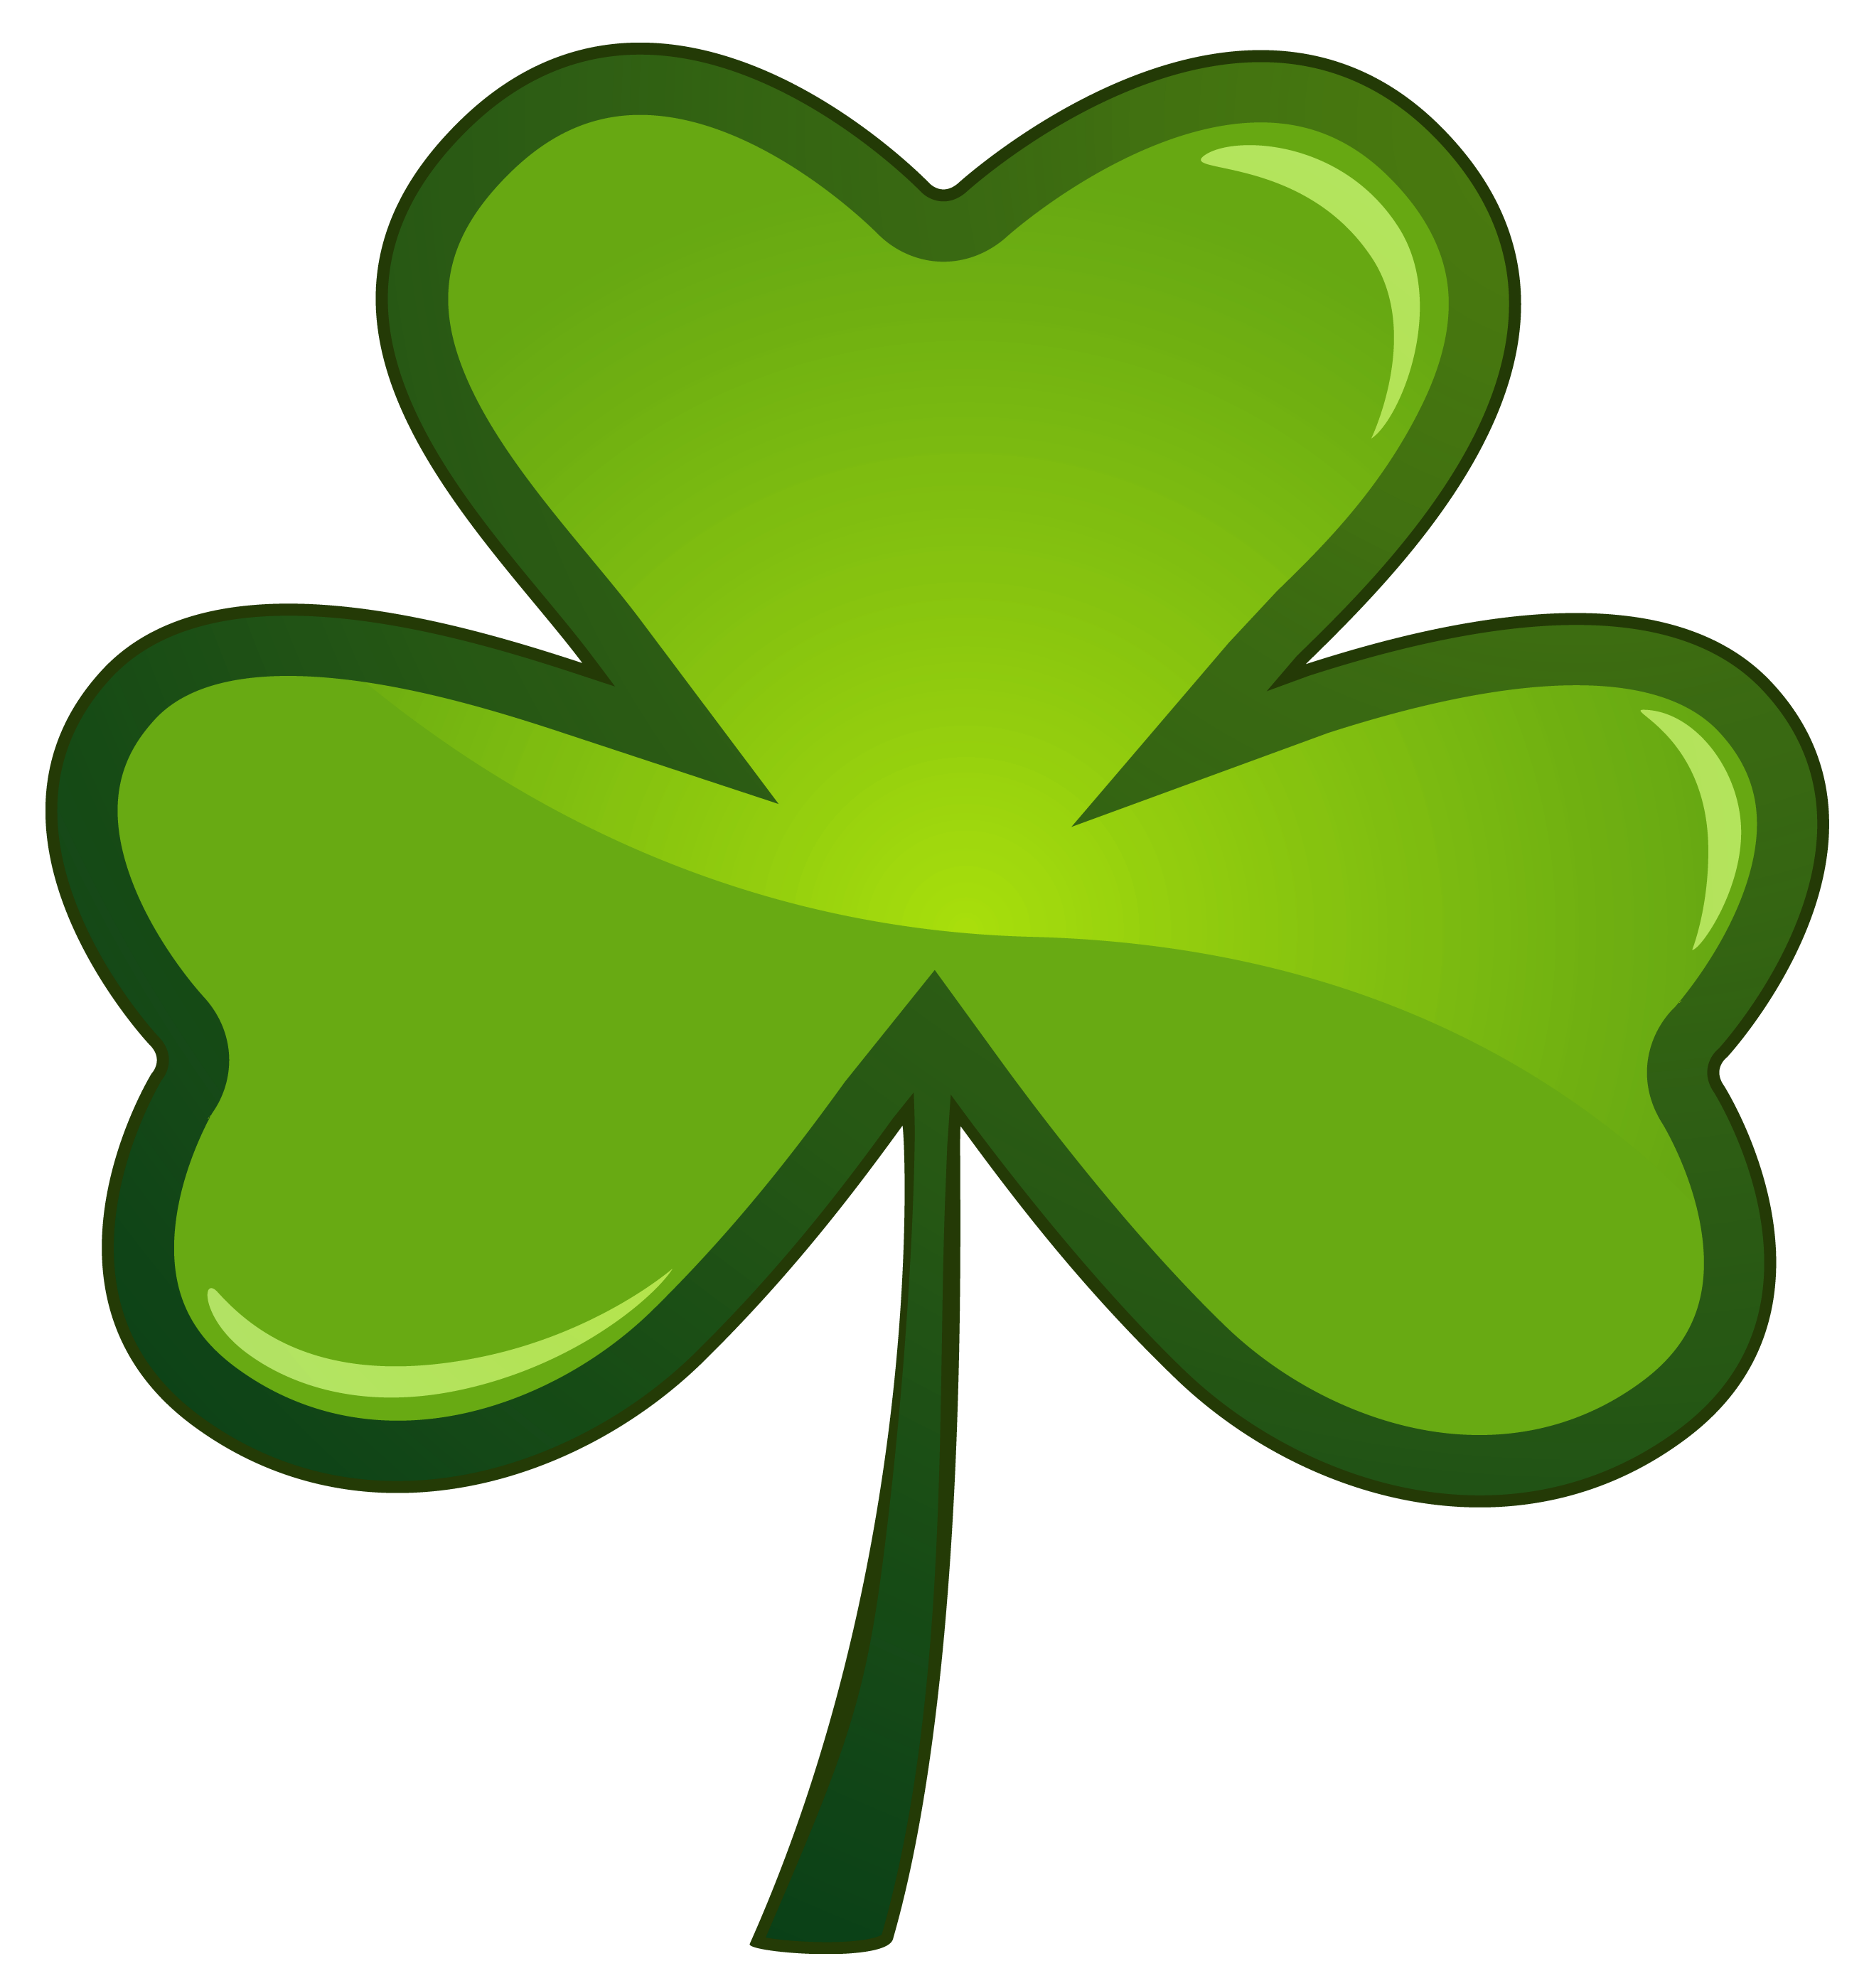 clover png clipart